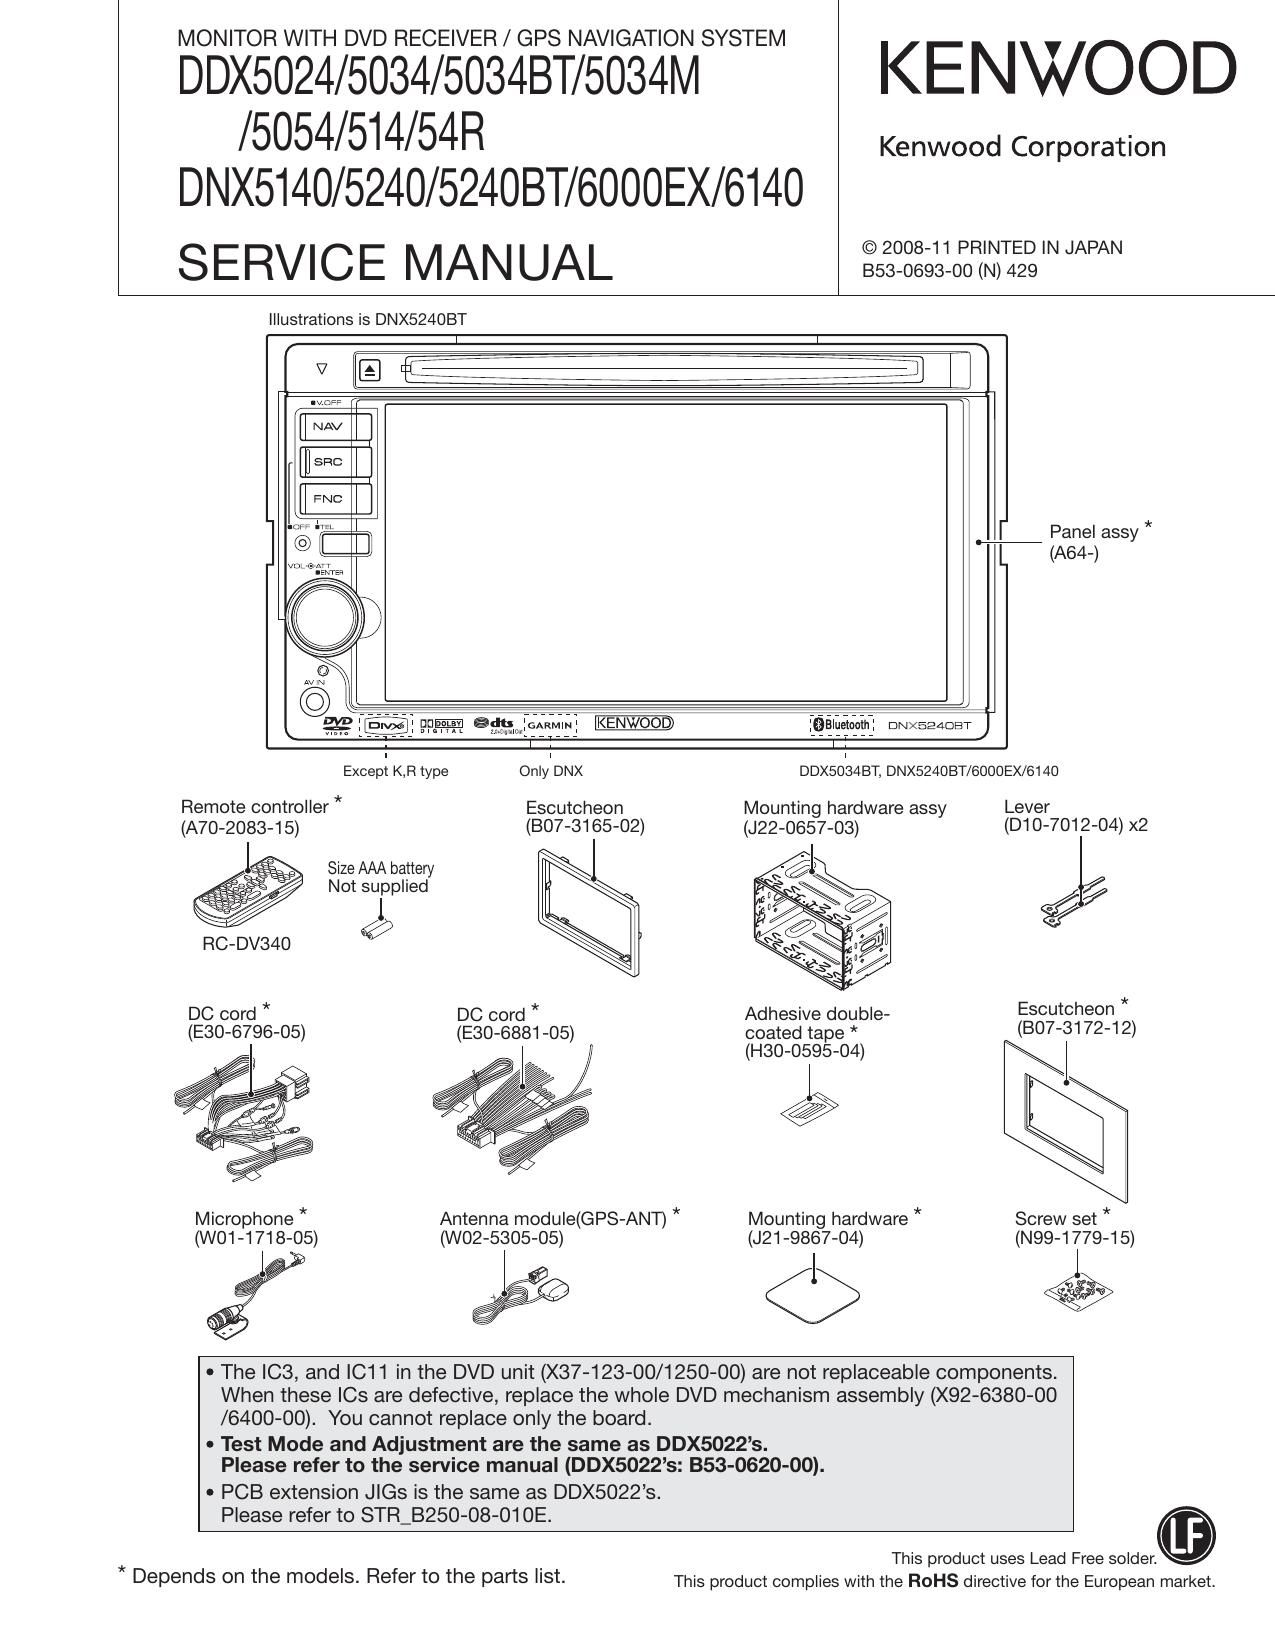 Wiring Diagram Kenwood Dnx5140 Wire Ddx516 4k Wallpapers Design Manual Installation Awesome